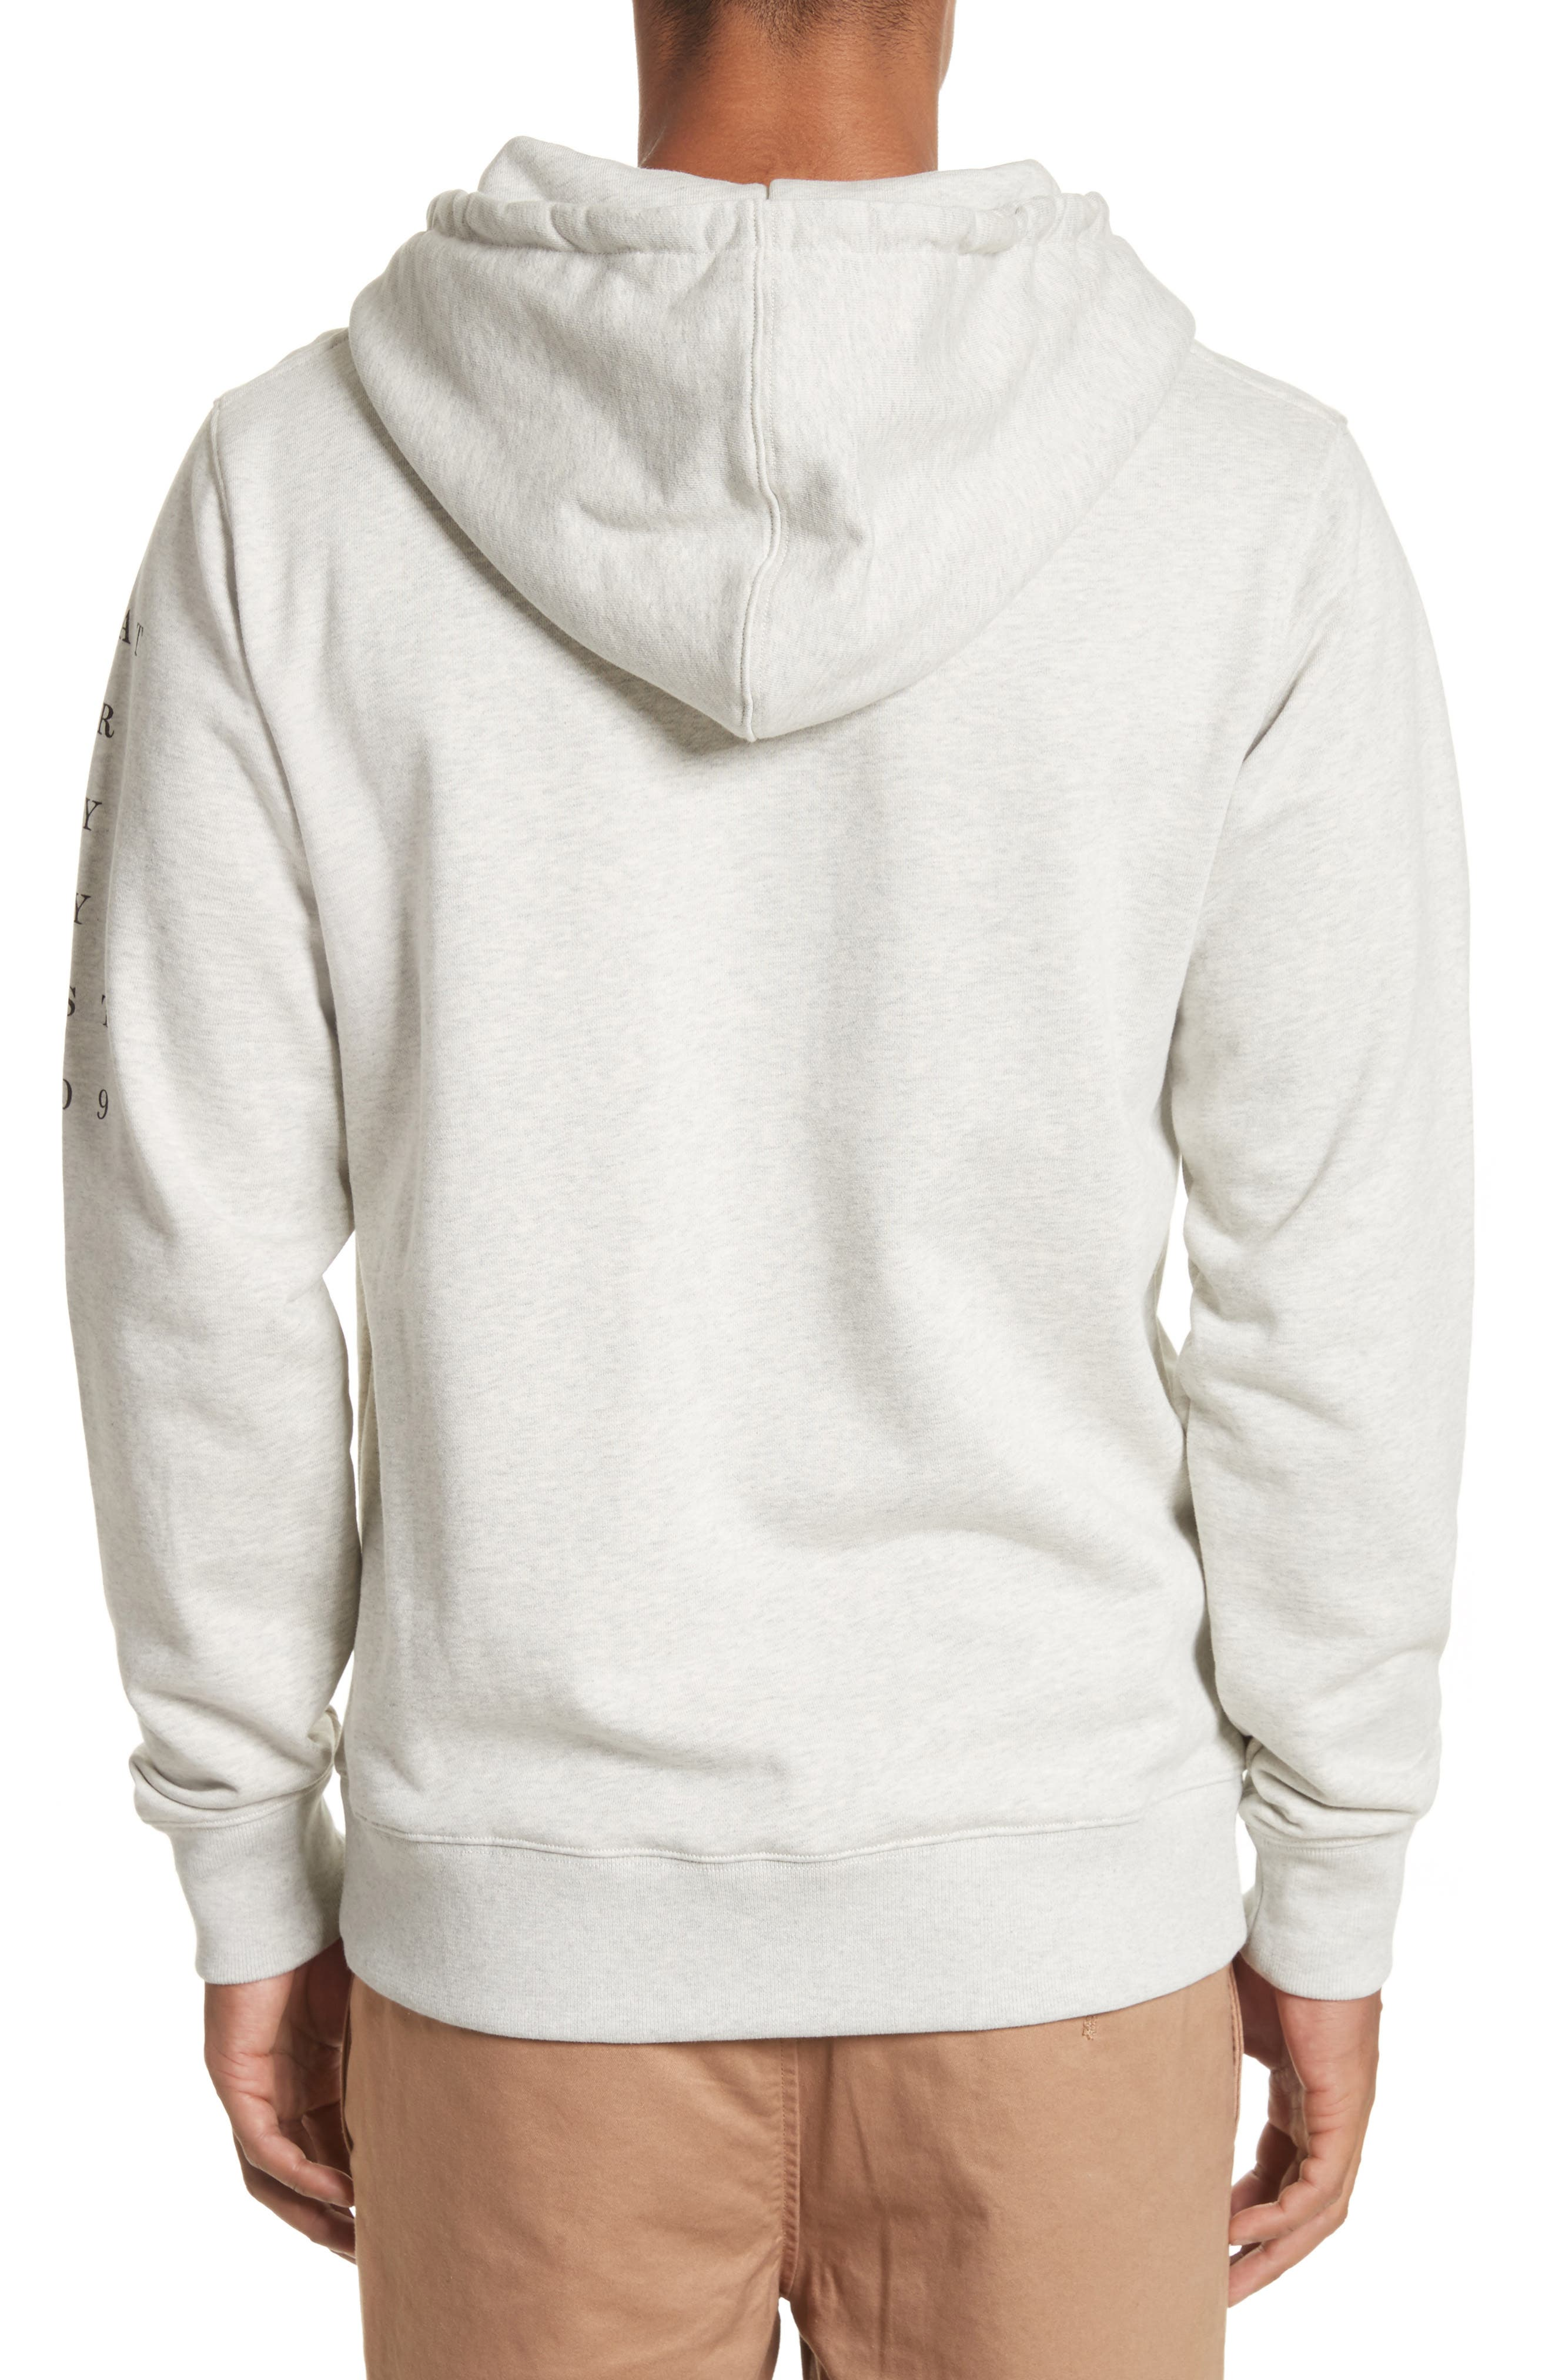 Ditch Stacked Hoodie,                             Alternate thumbnail 2, color,                             290